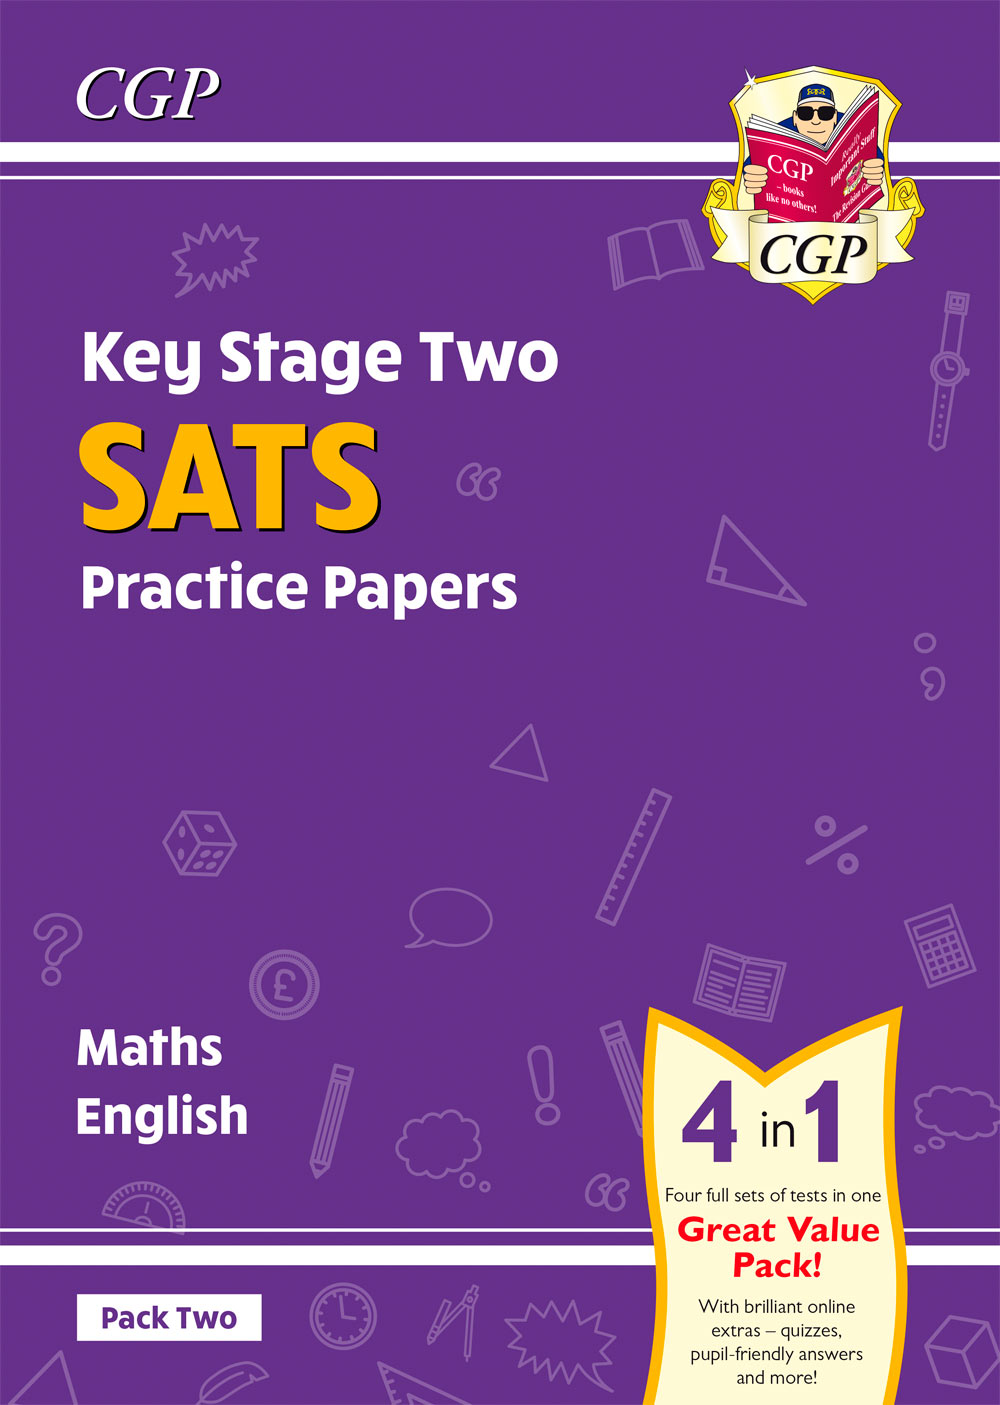 MEB224 - New KS2 Maths & English SATS Practice Papers: Pack 1 - for the 2021 tests (with free Online